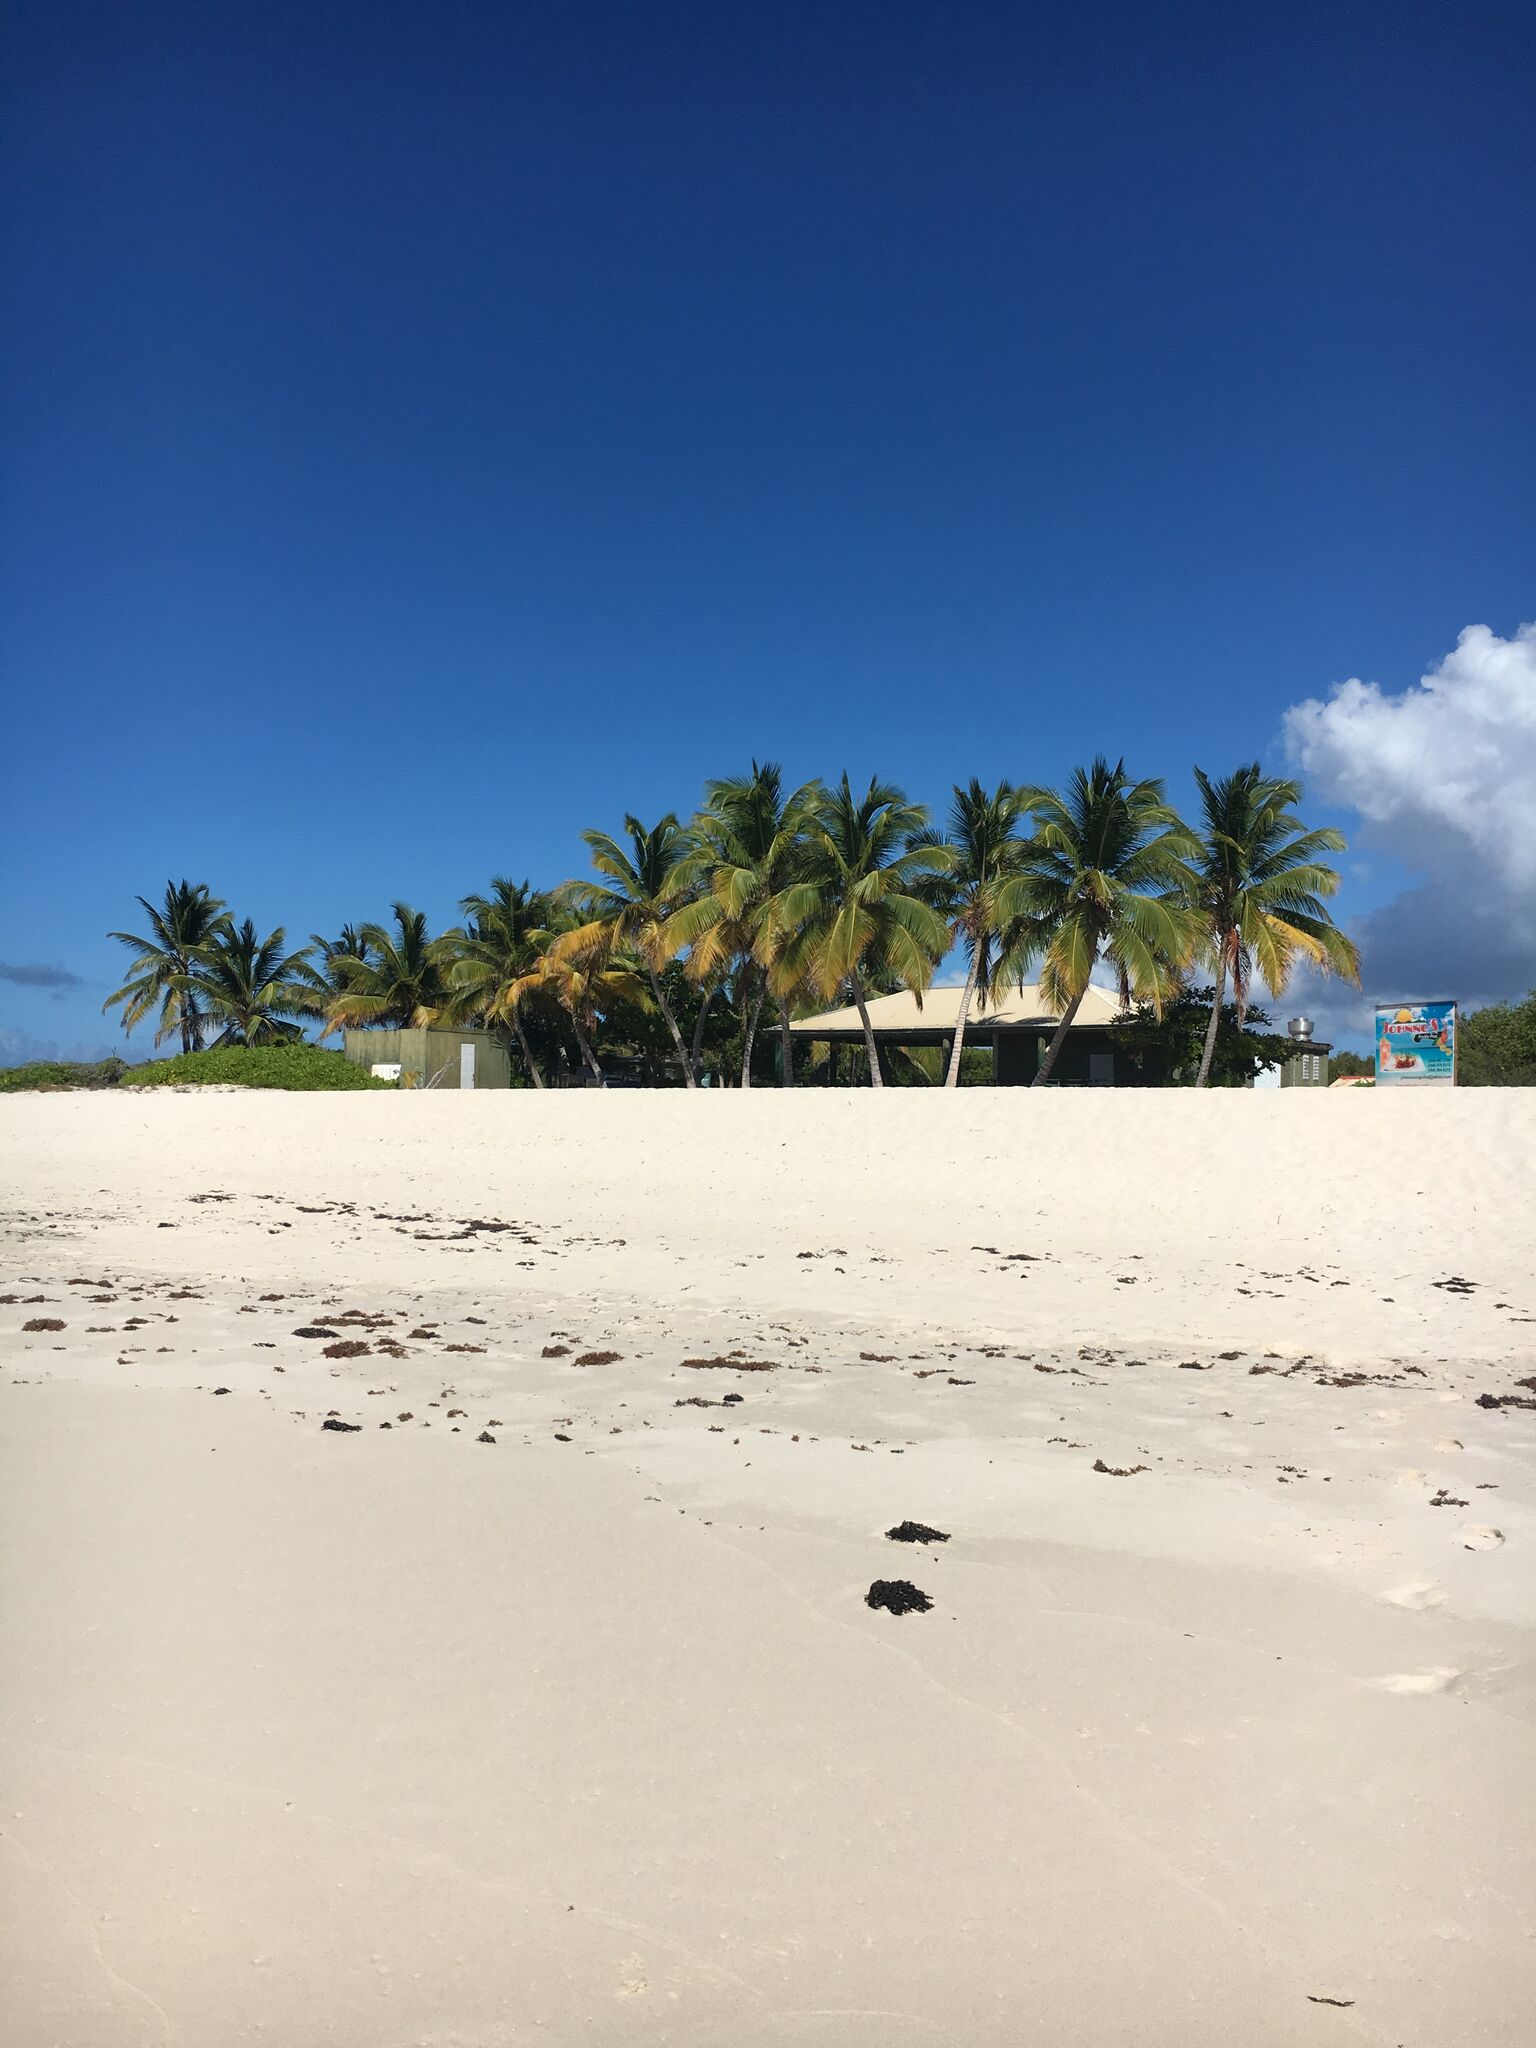 PaleOMG Travel - The HANDS DOWN Best Way to See The Caribbean